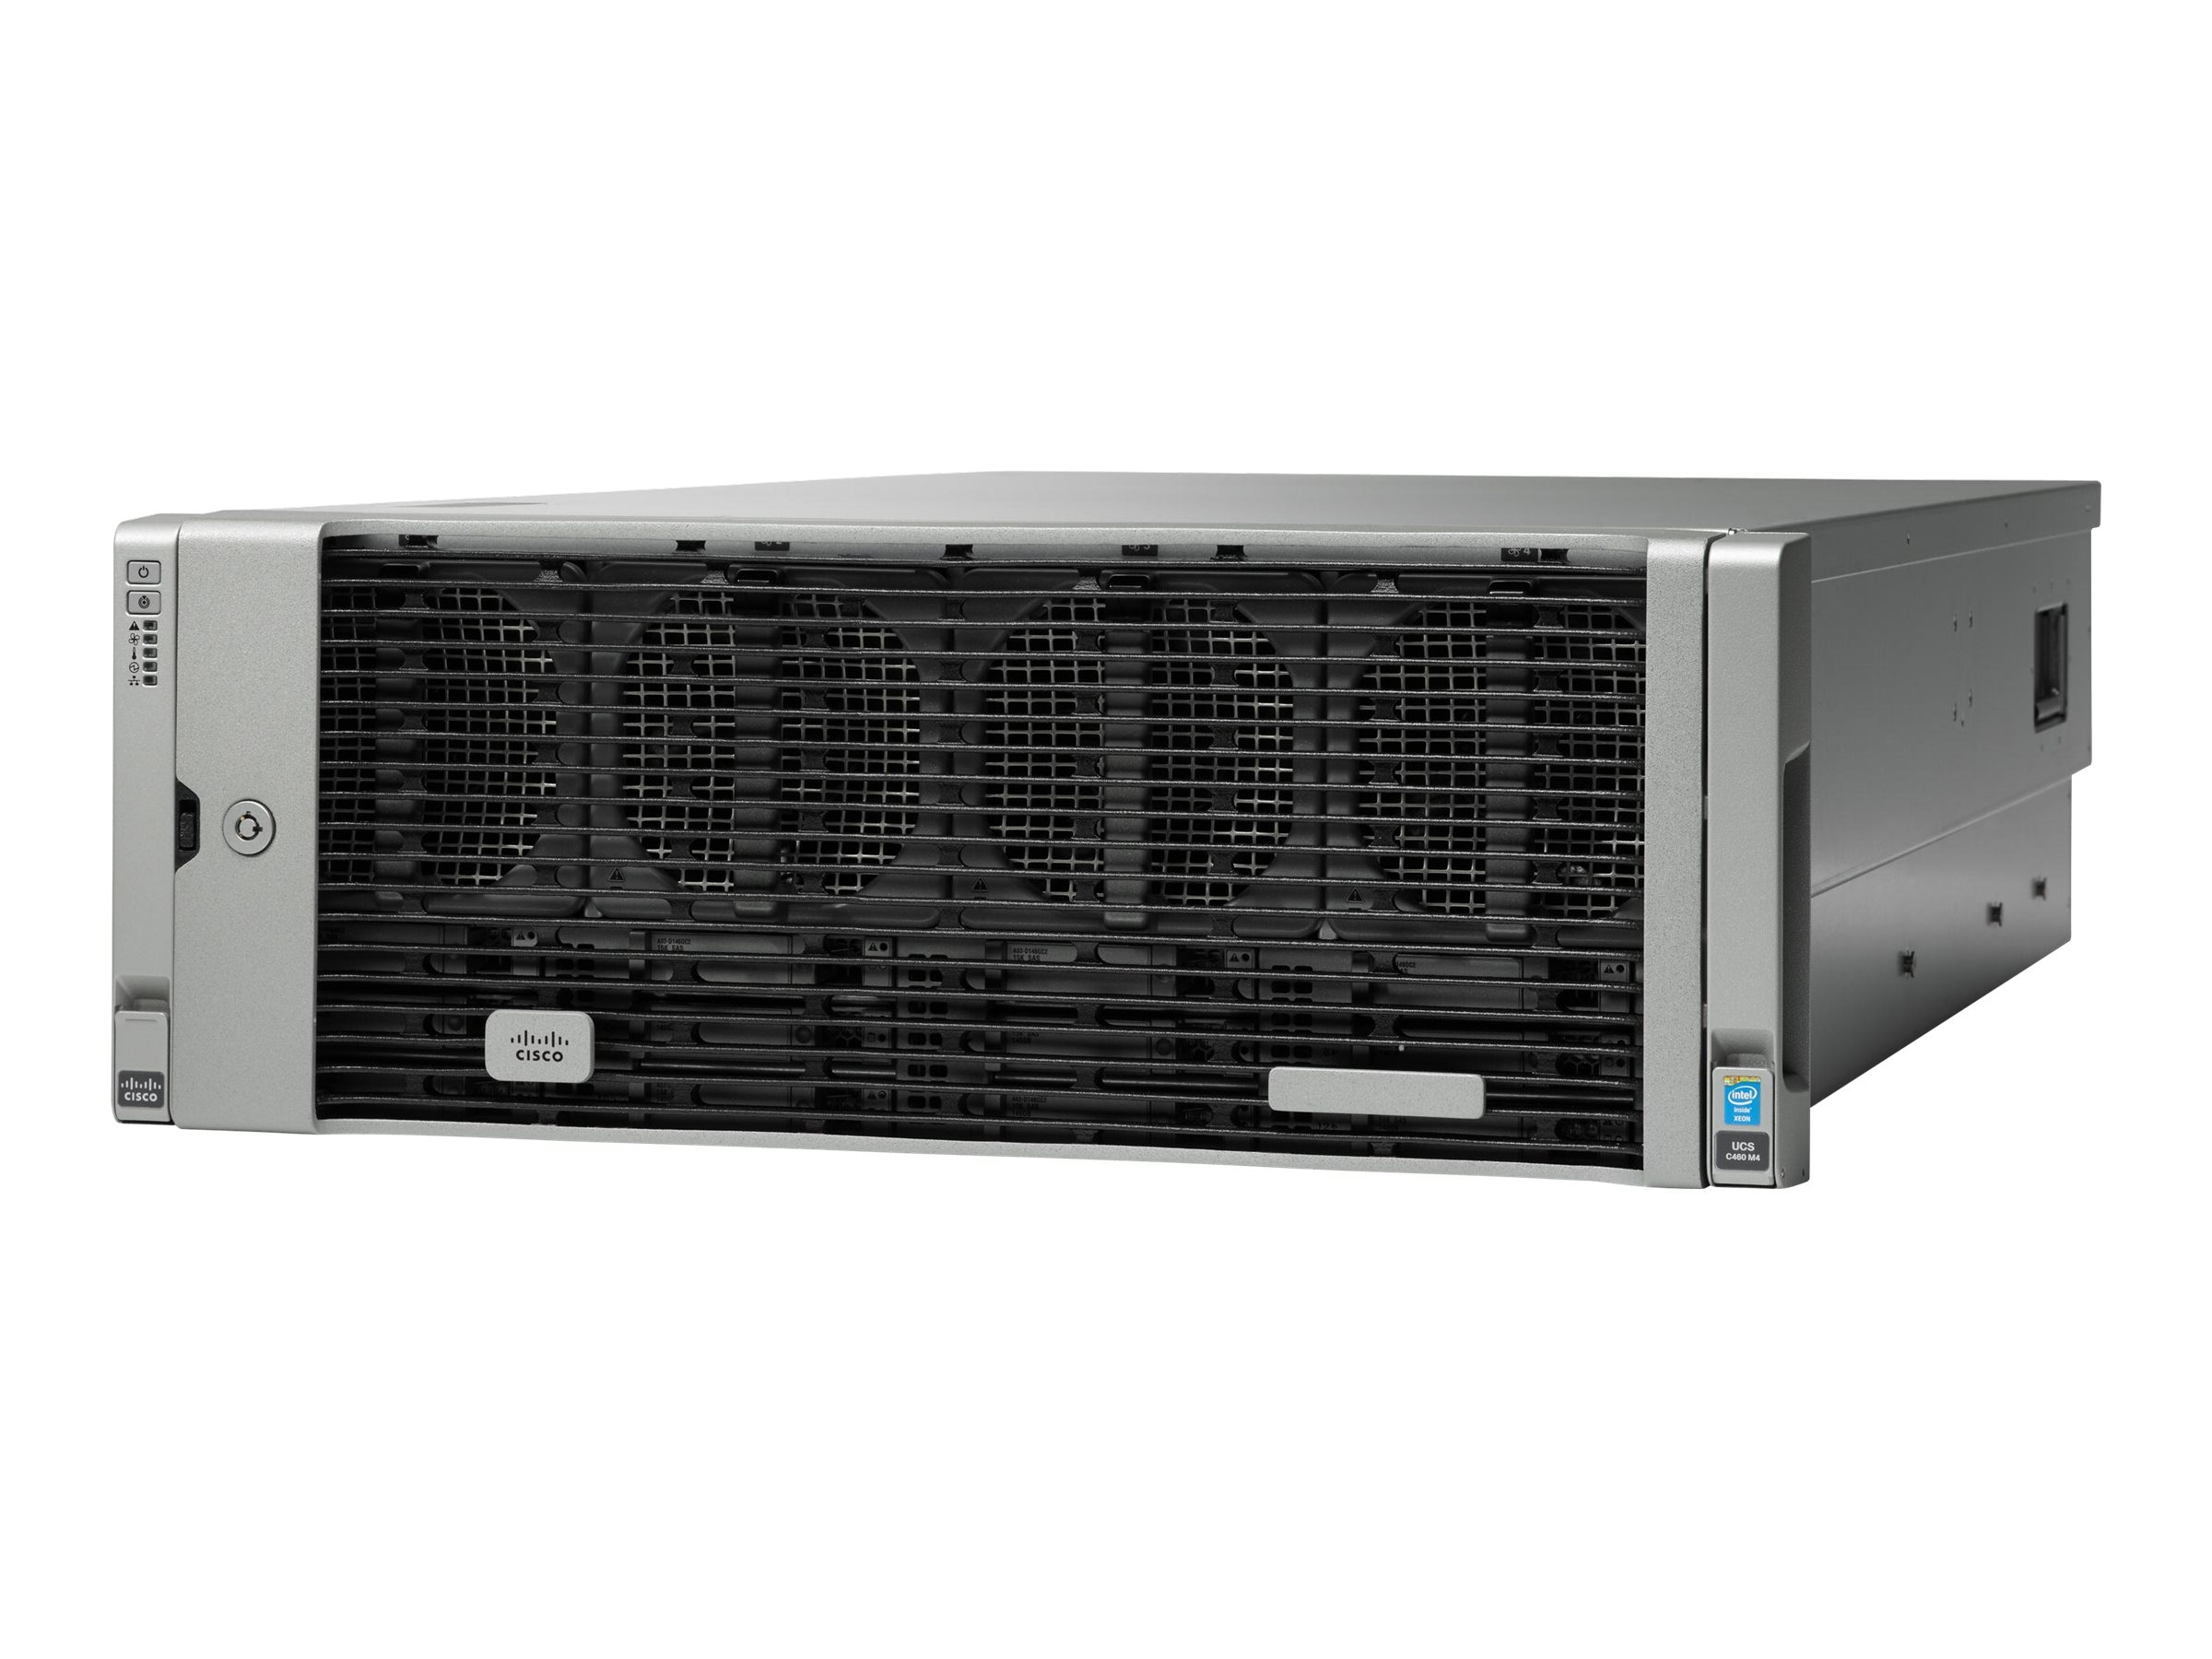 Cisco UCS C460 M4 4U Rack Server (4) Xeon E7-4880v2 1TB RAM 900GB